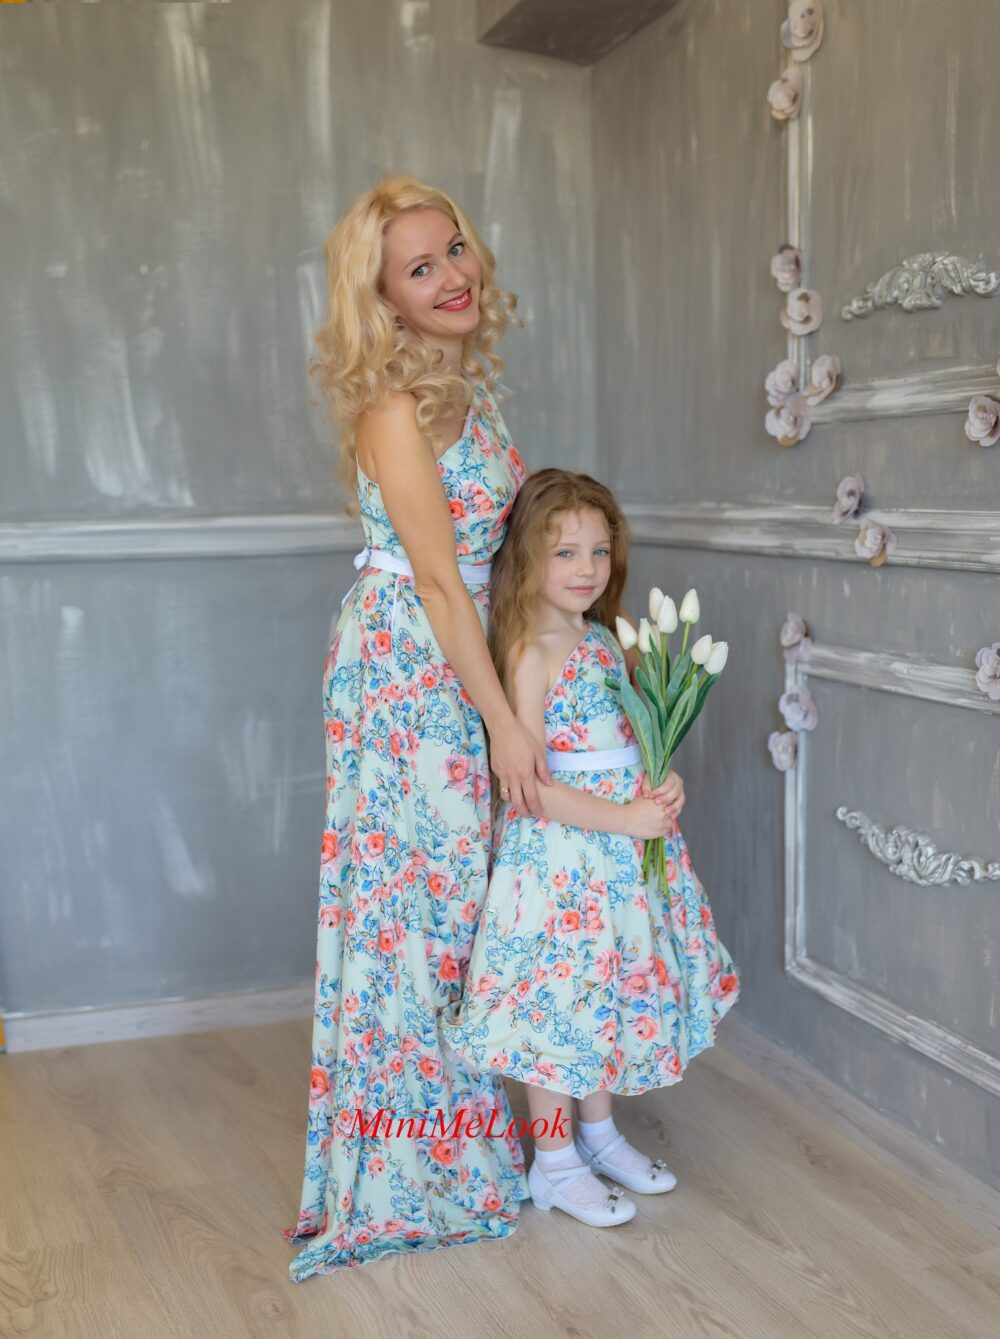 Autumn Mommy & Me Outfits, Floral Maxi Dress, Matching Mother Daughter Photoshoot Birthday Party Special Occasion